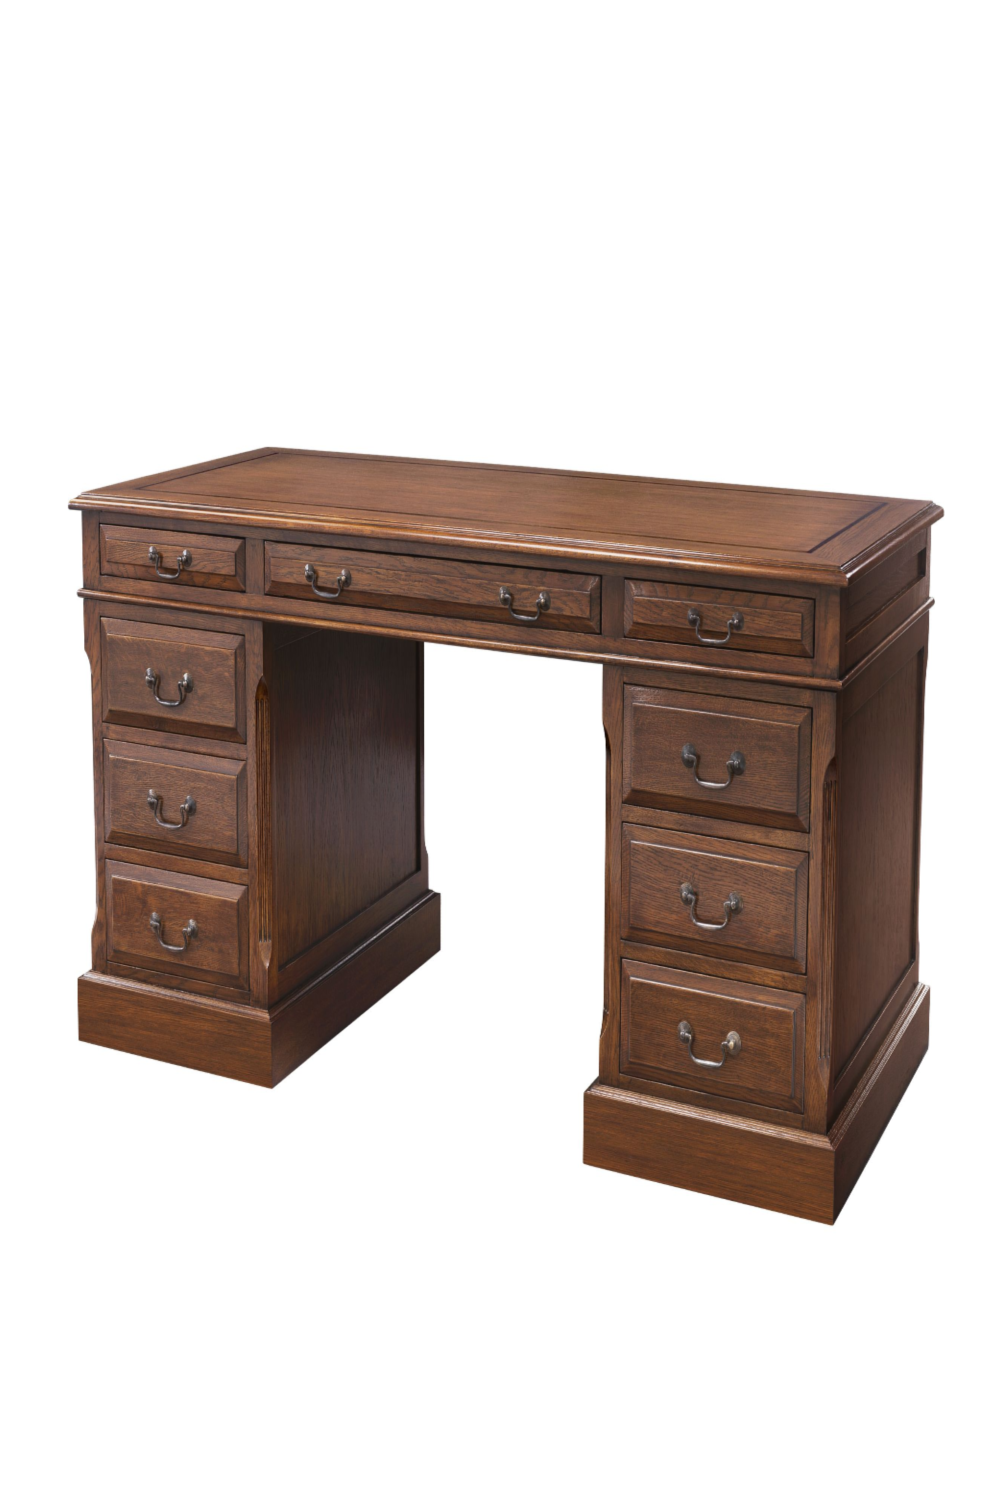 Antique Oak Desk | Eichholtz British | #1 Eichholtz Retailer